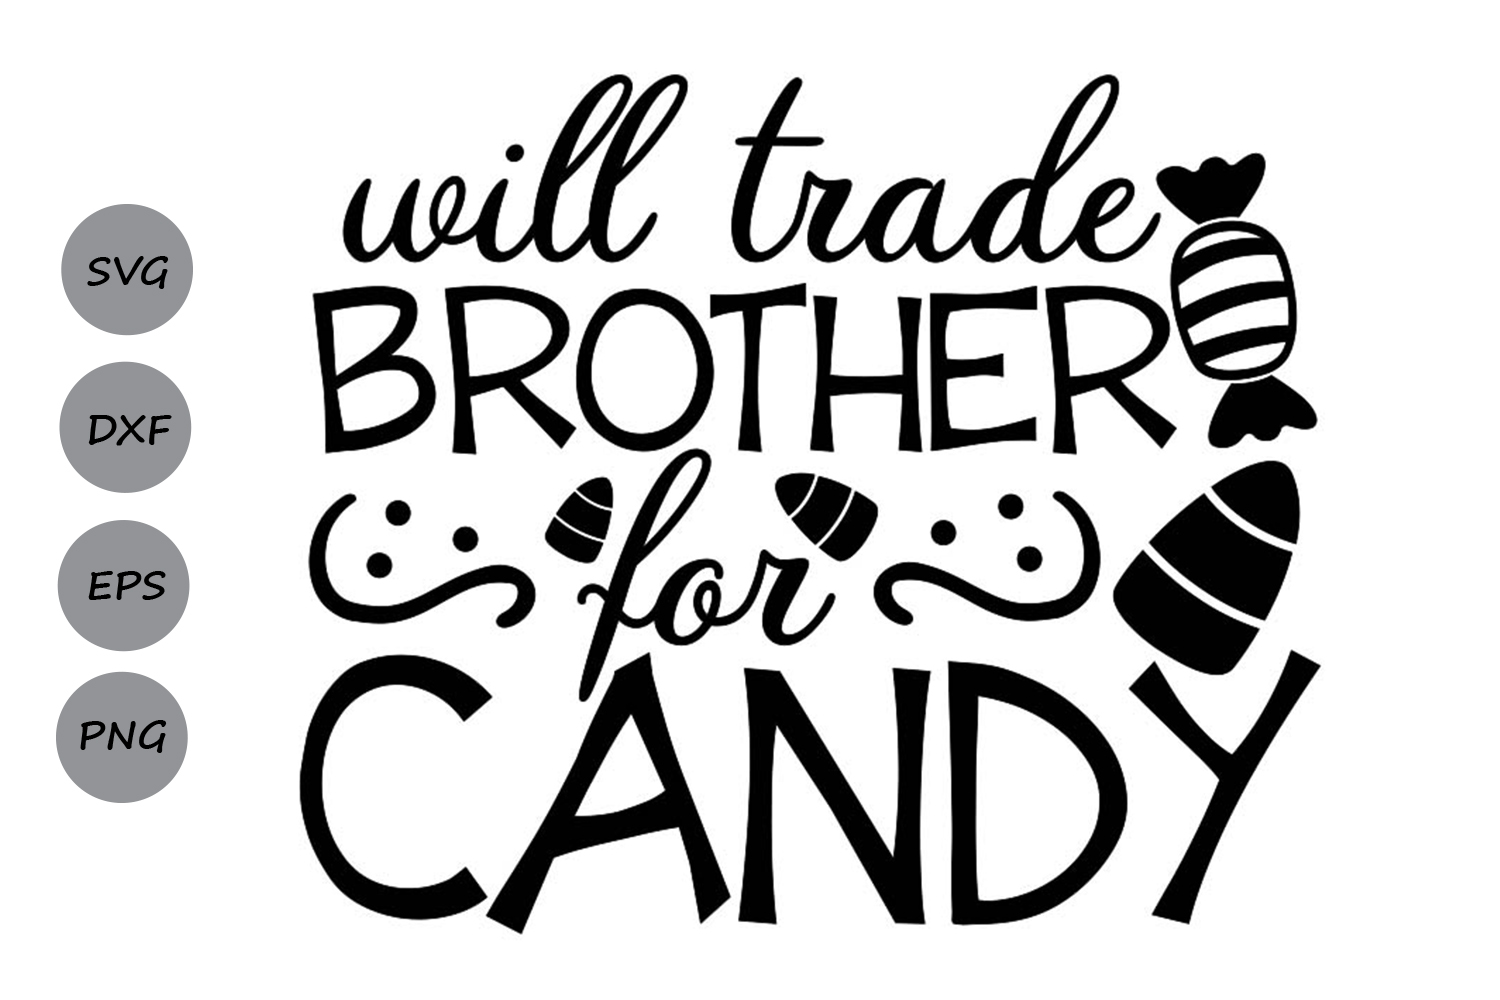 Download Free Will Trade Brother For Candy Graphic By Cosmosfineart Creative for Cricut Explore, Silhouette and other cutting machines.